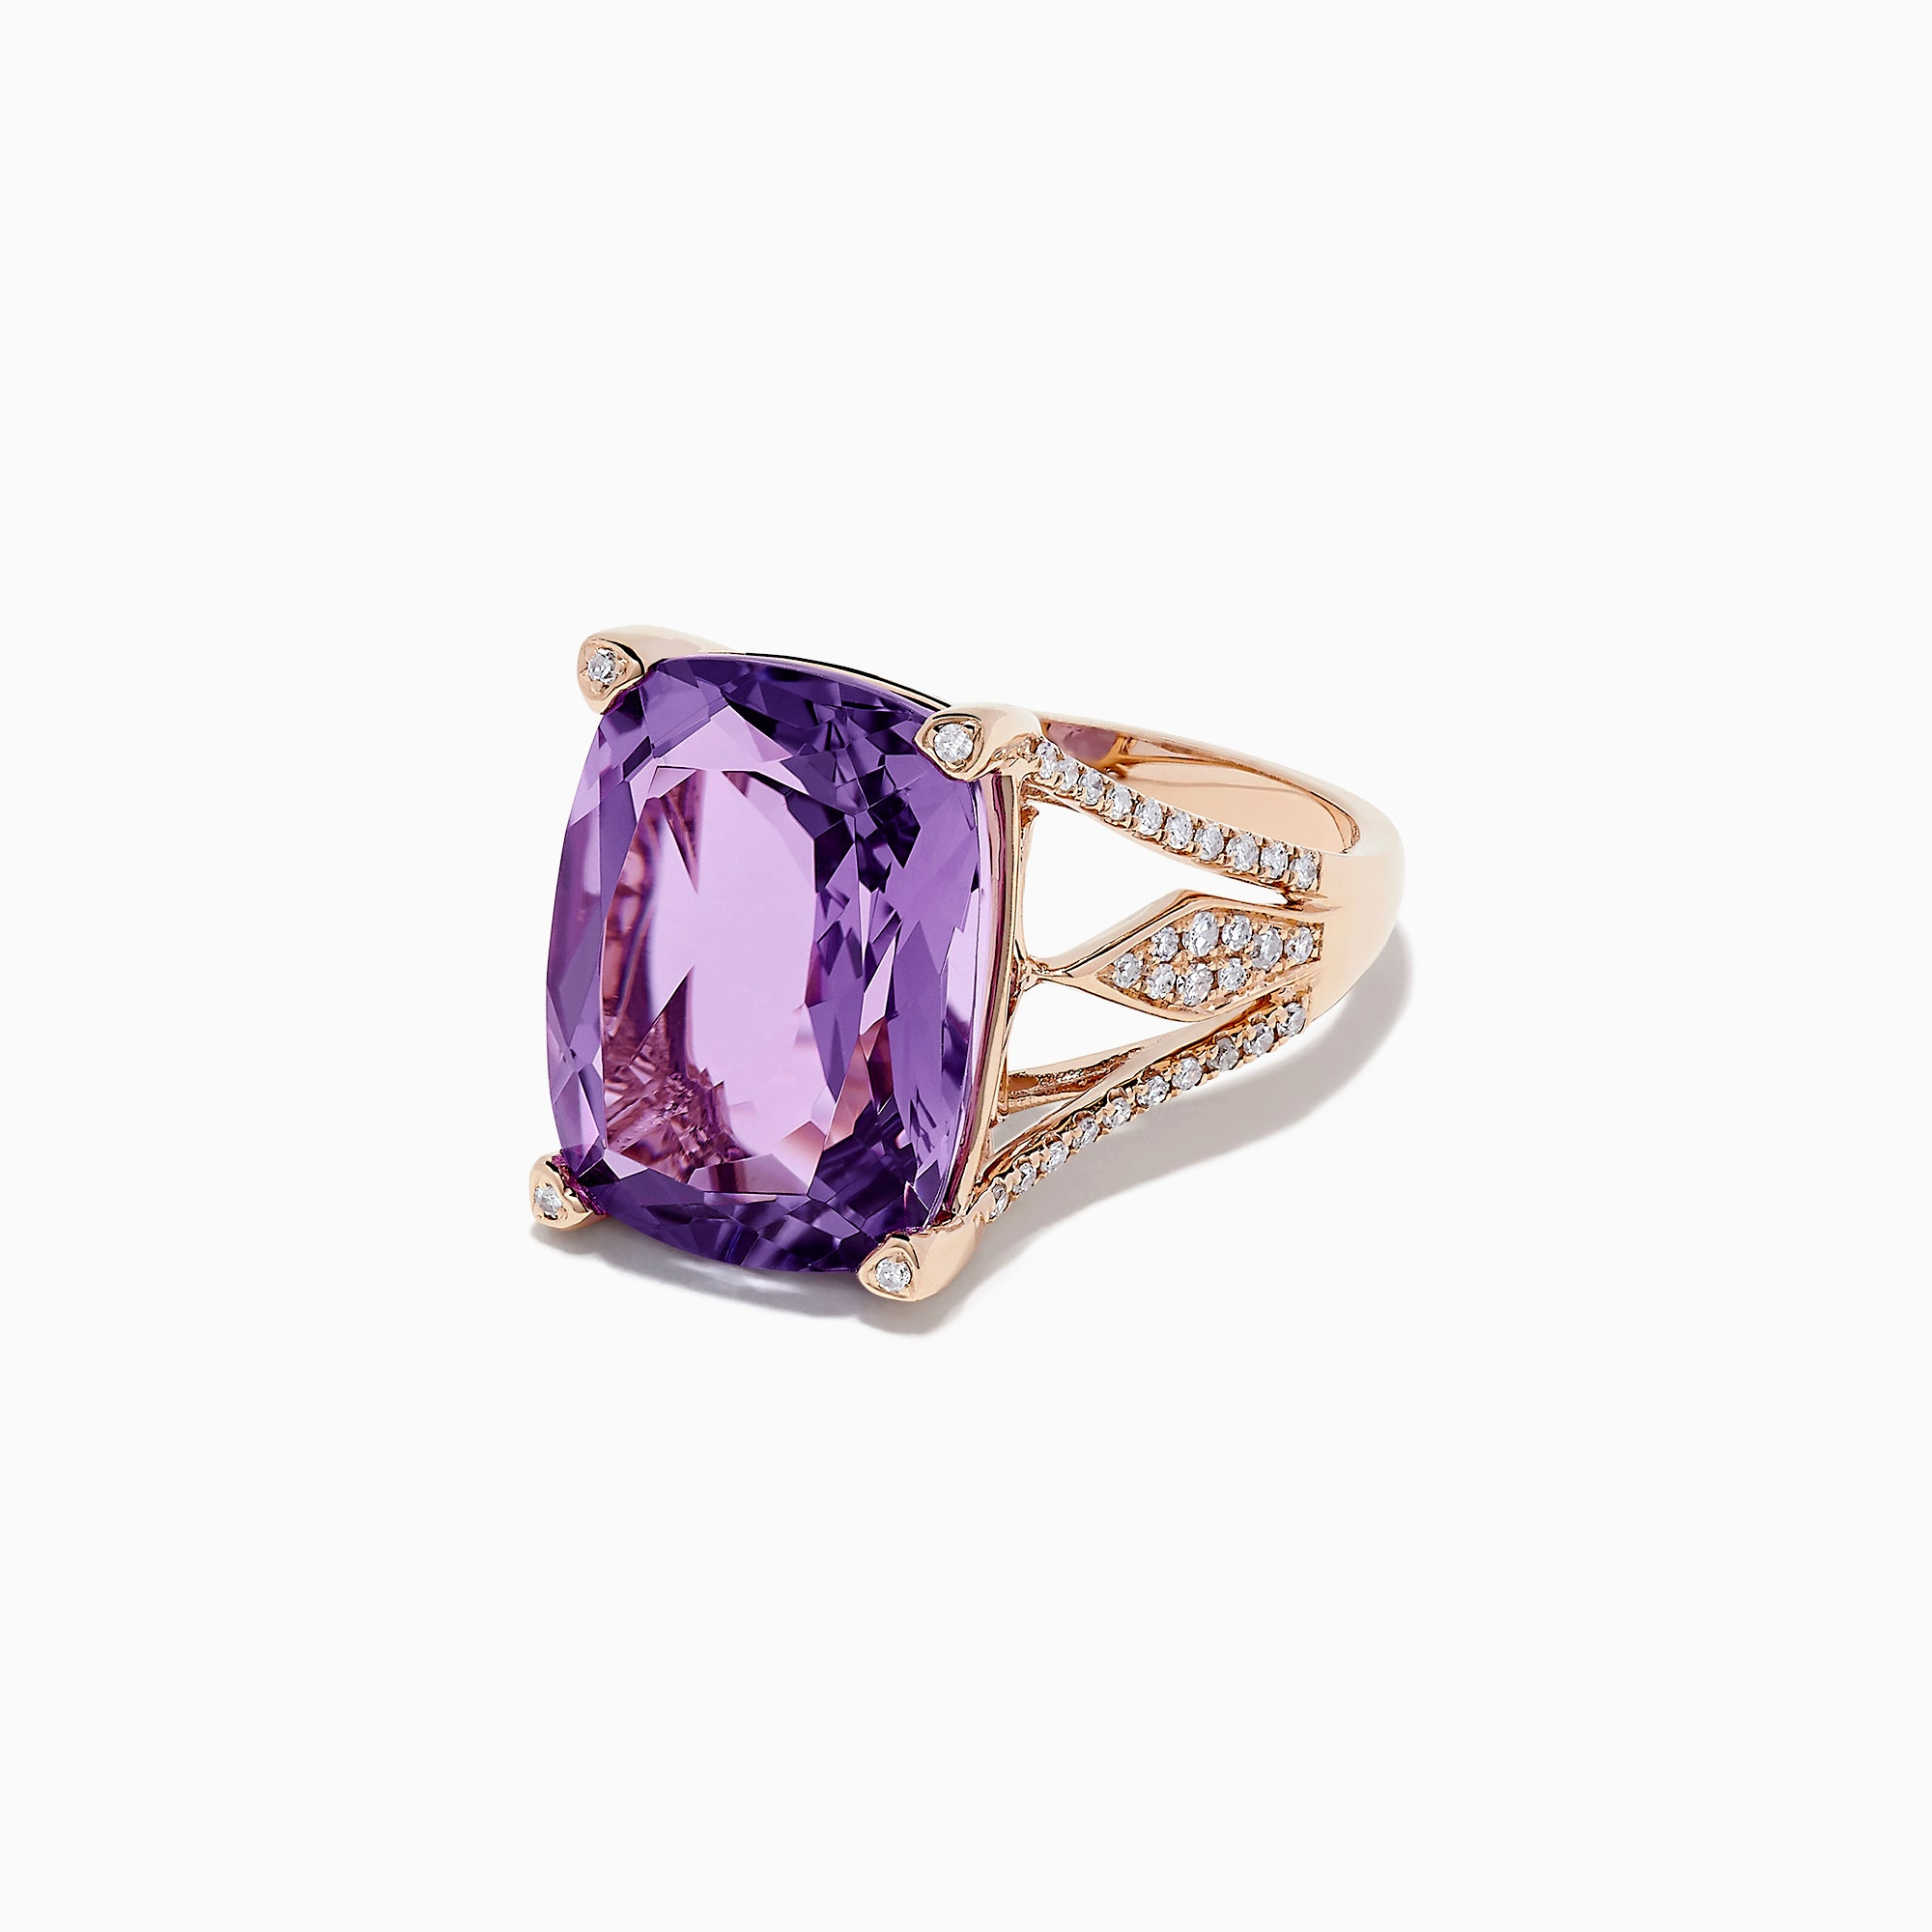 Effy 14K Rose Gold Amethyst and Diamond Cocktail Ring, 9.86 TCW